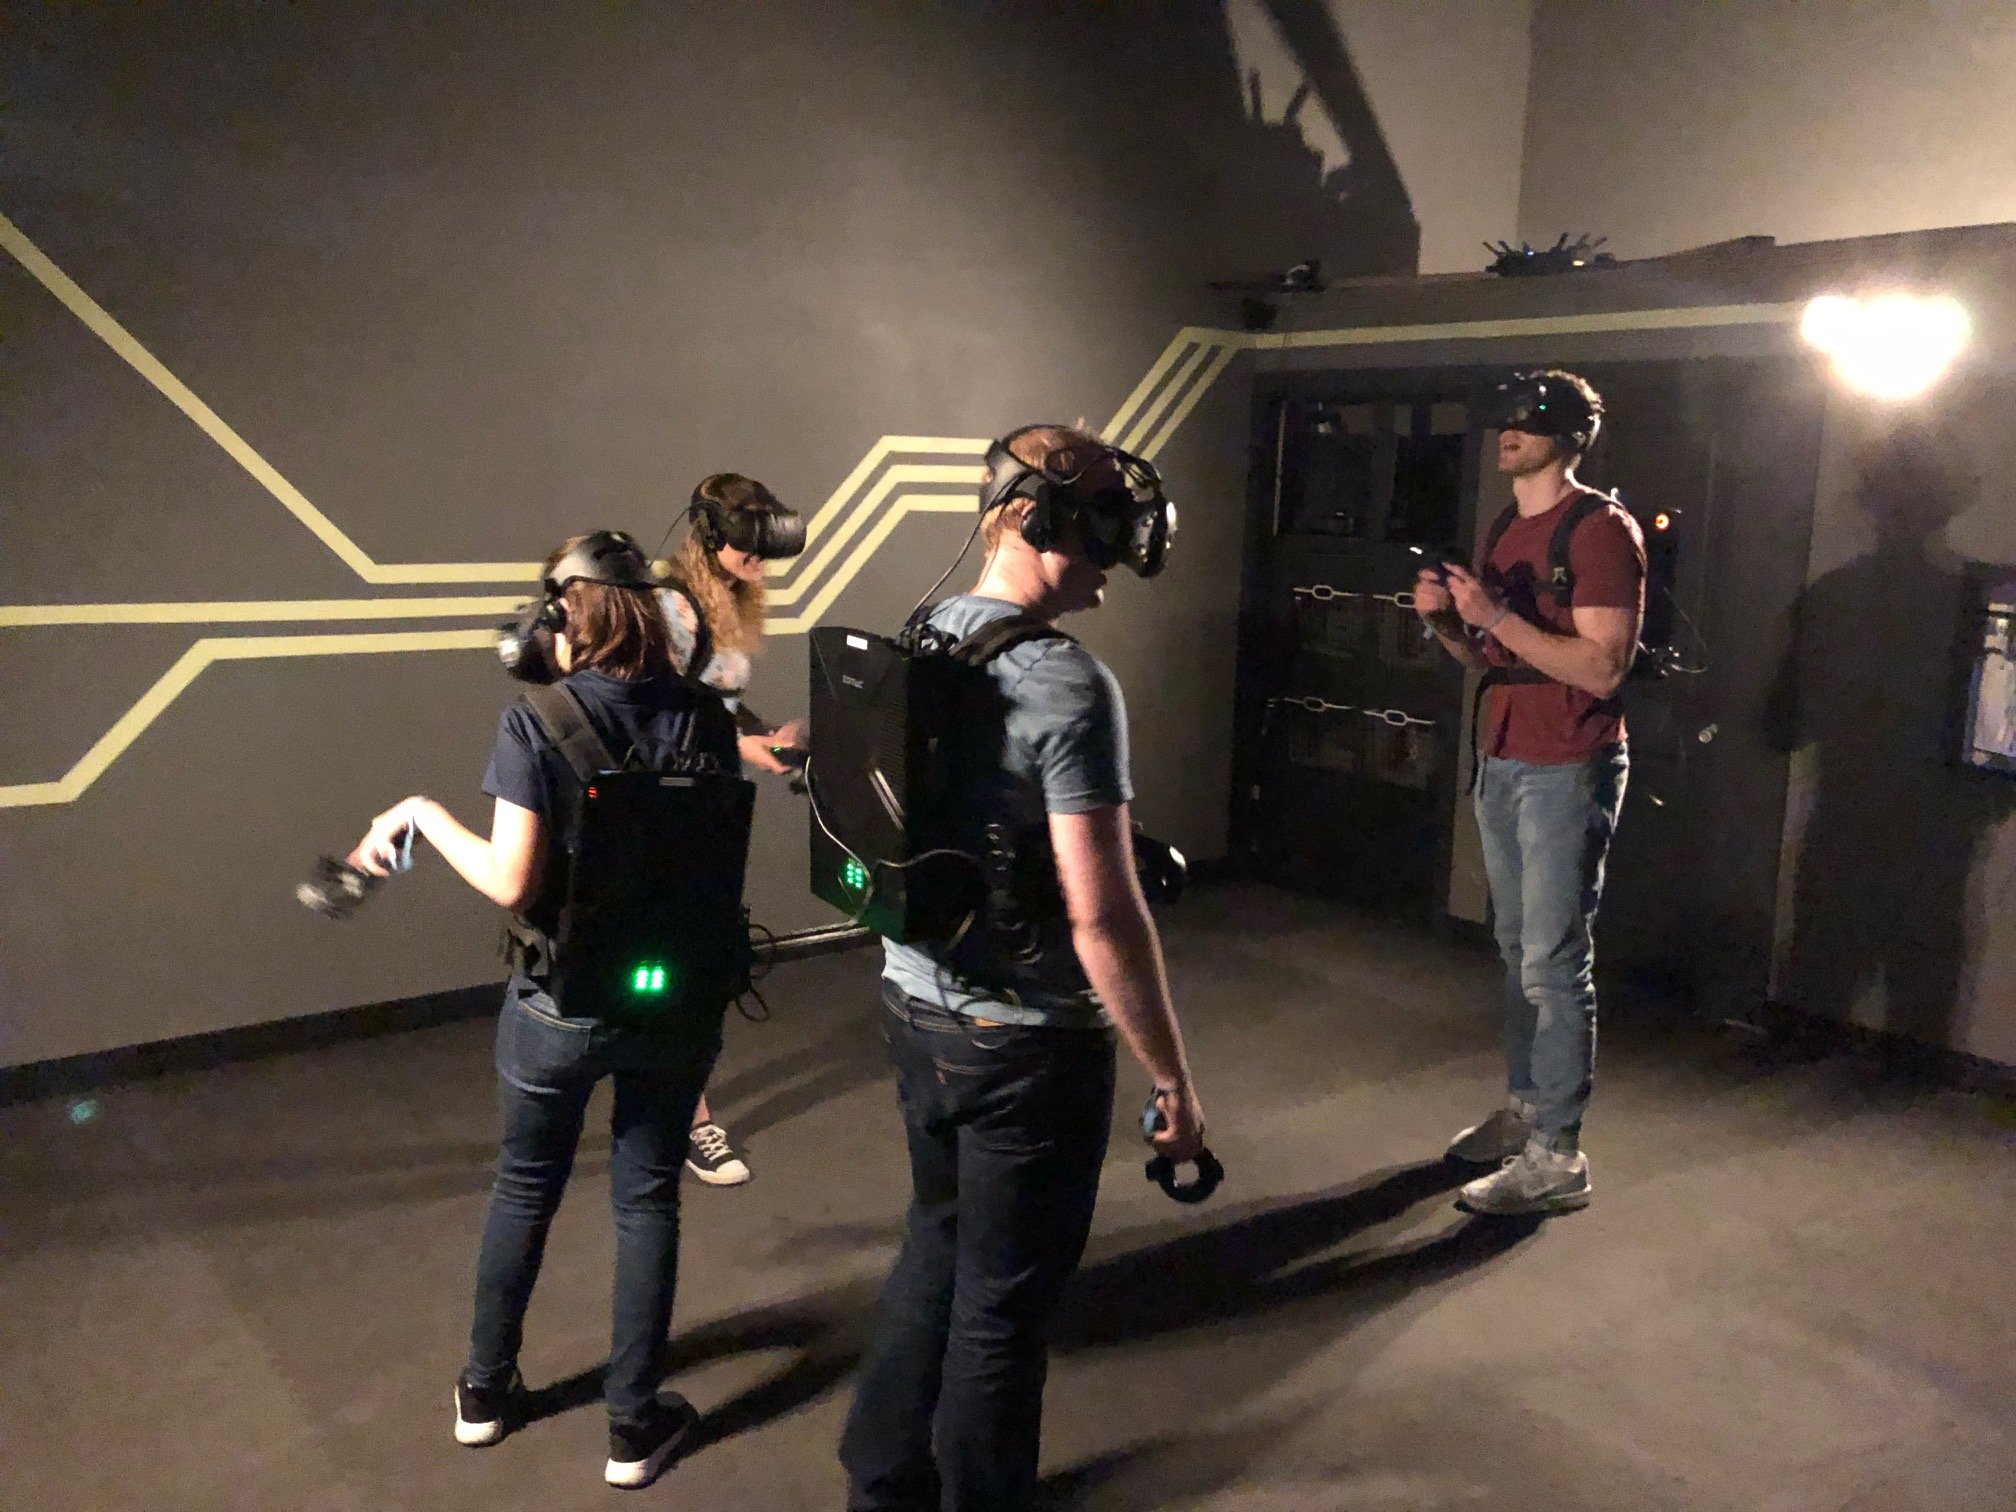 VR escape room players wearing equipment